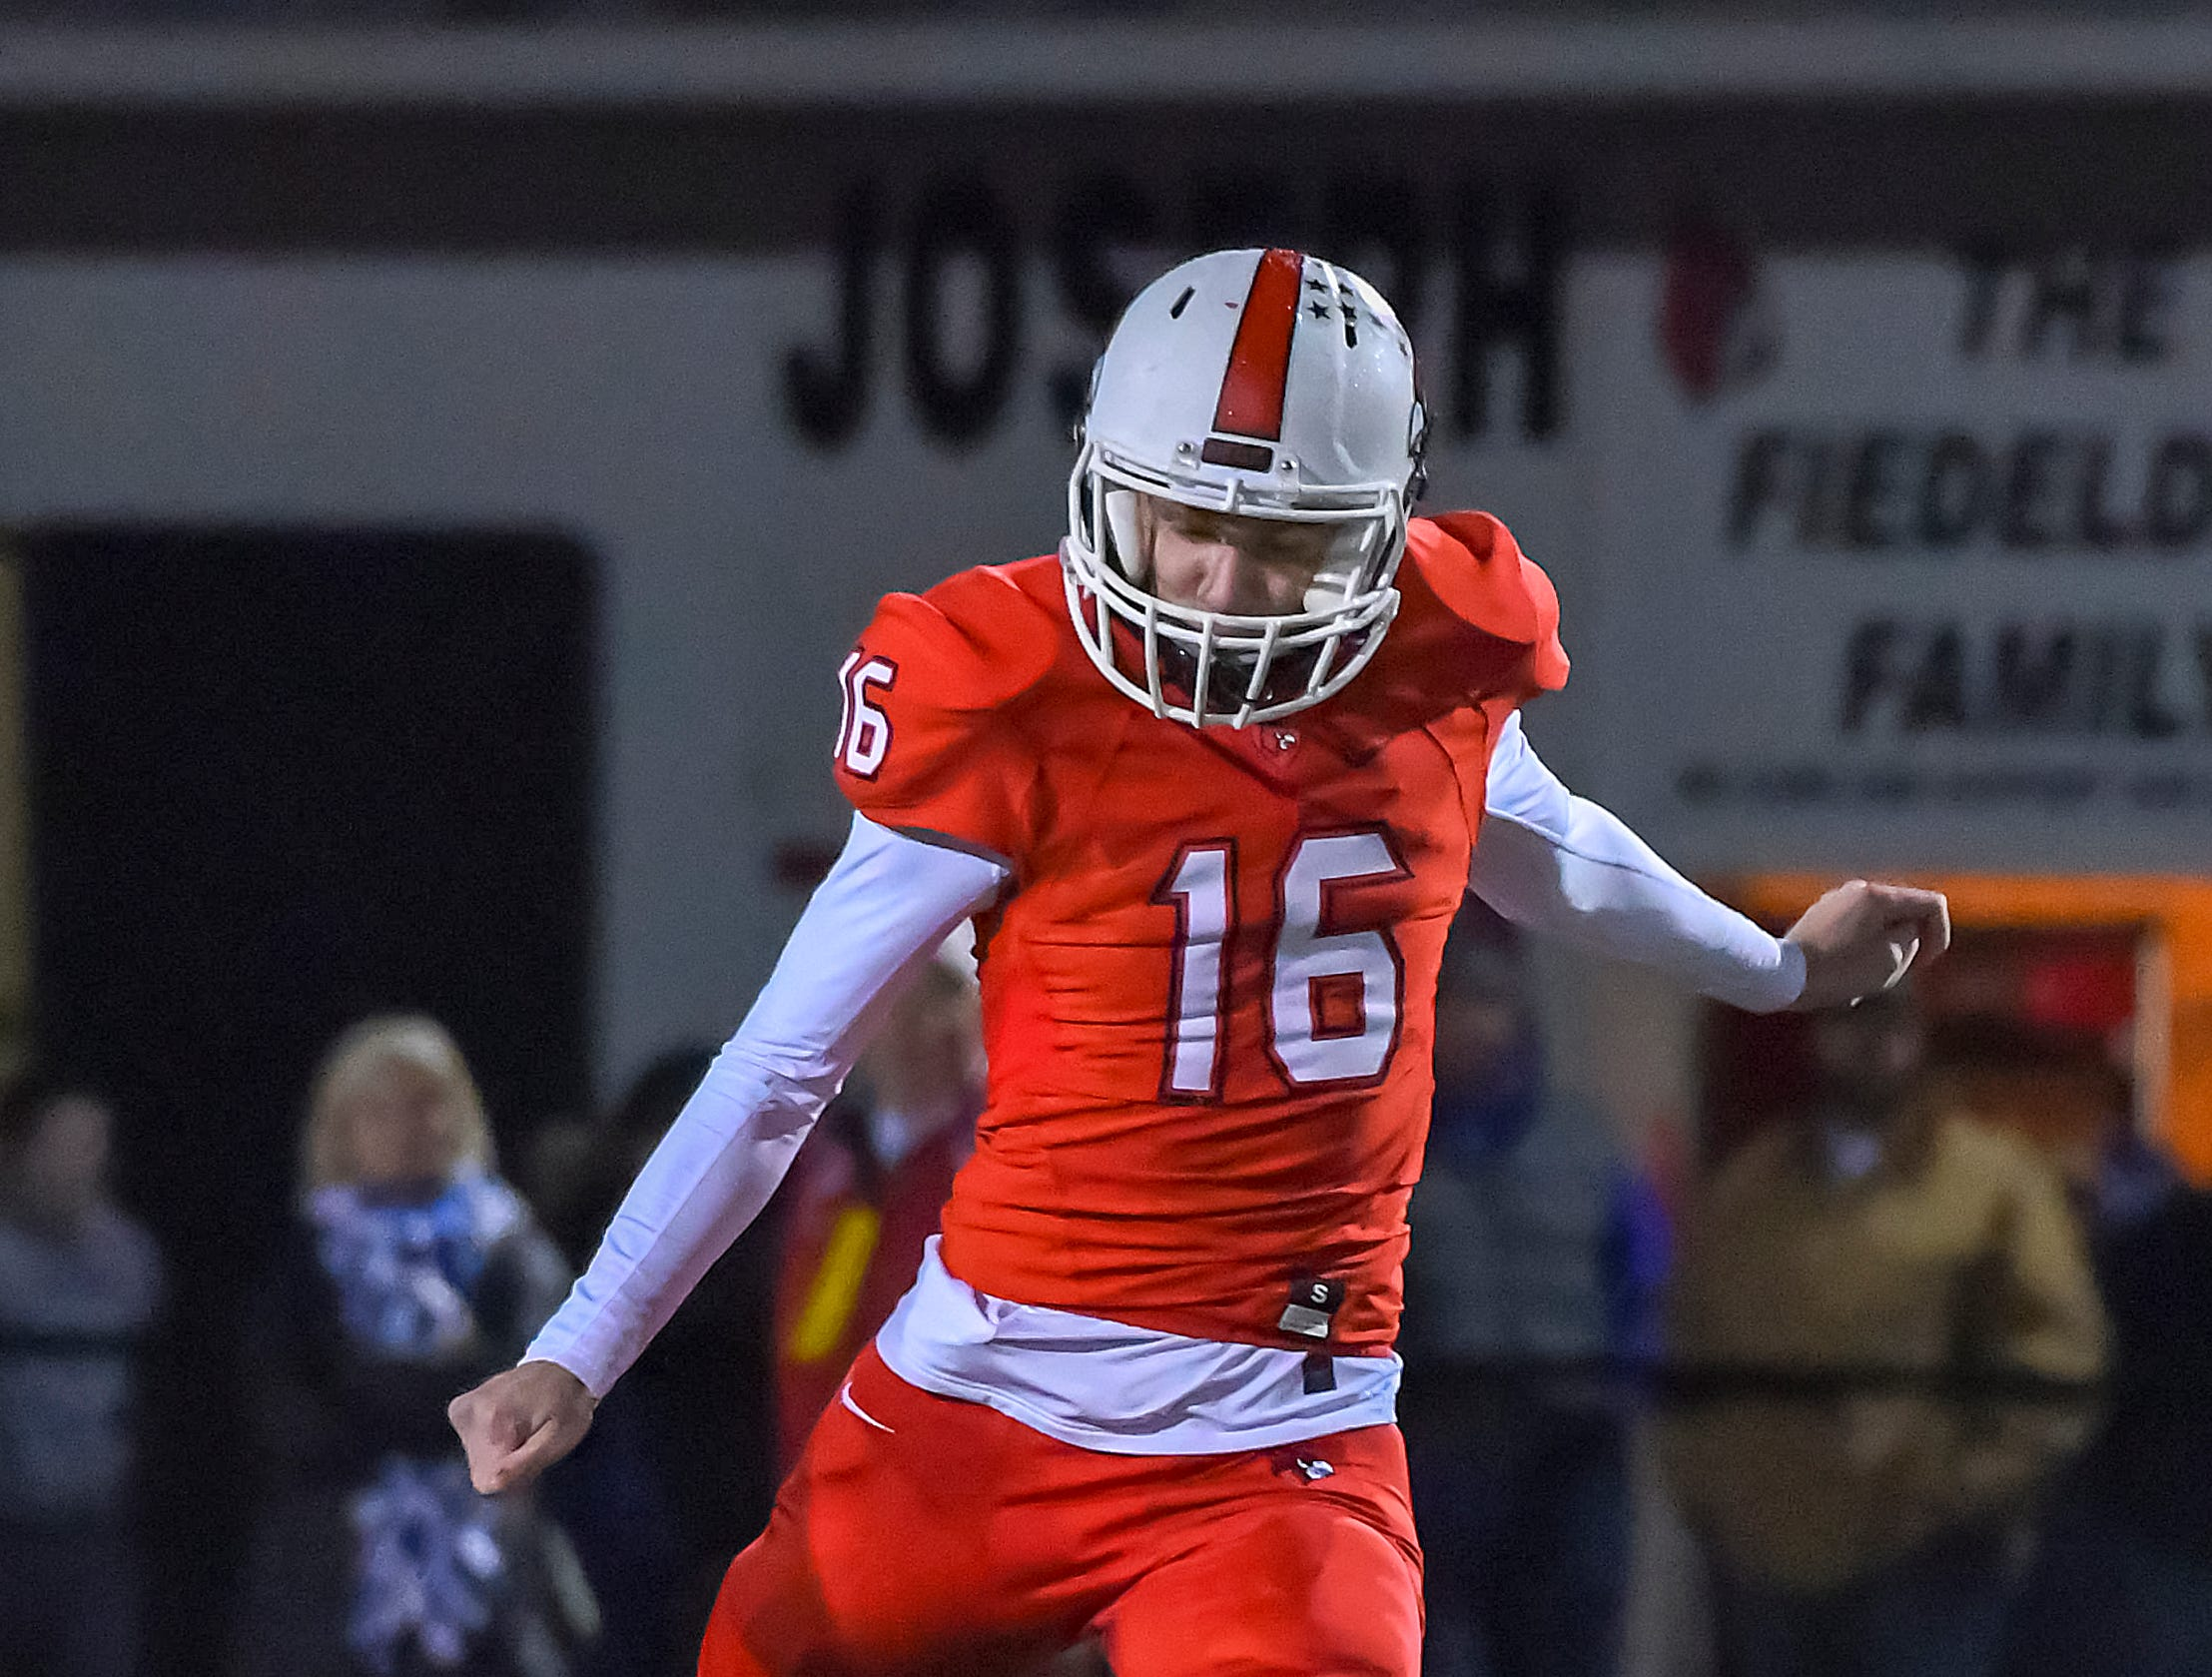 Colerain kicker Chris Mangold kicks off to the Bombers in the OHSAA DI Region 4 Playoffs at Colerain High School,  Friday Nov. 2, 2018